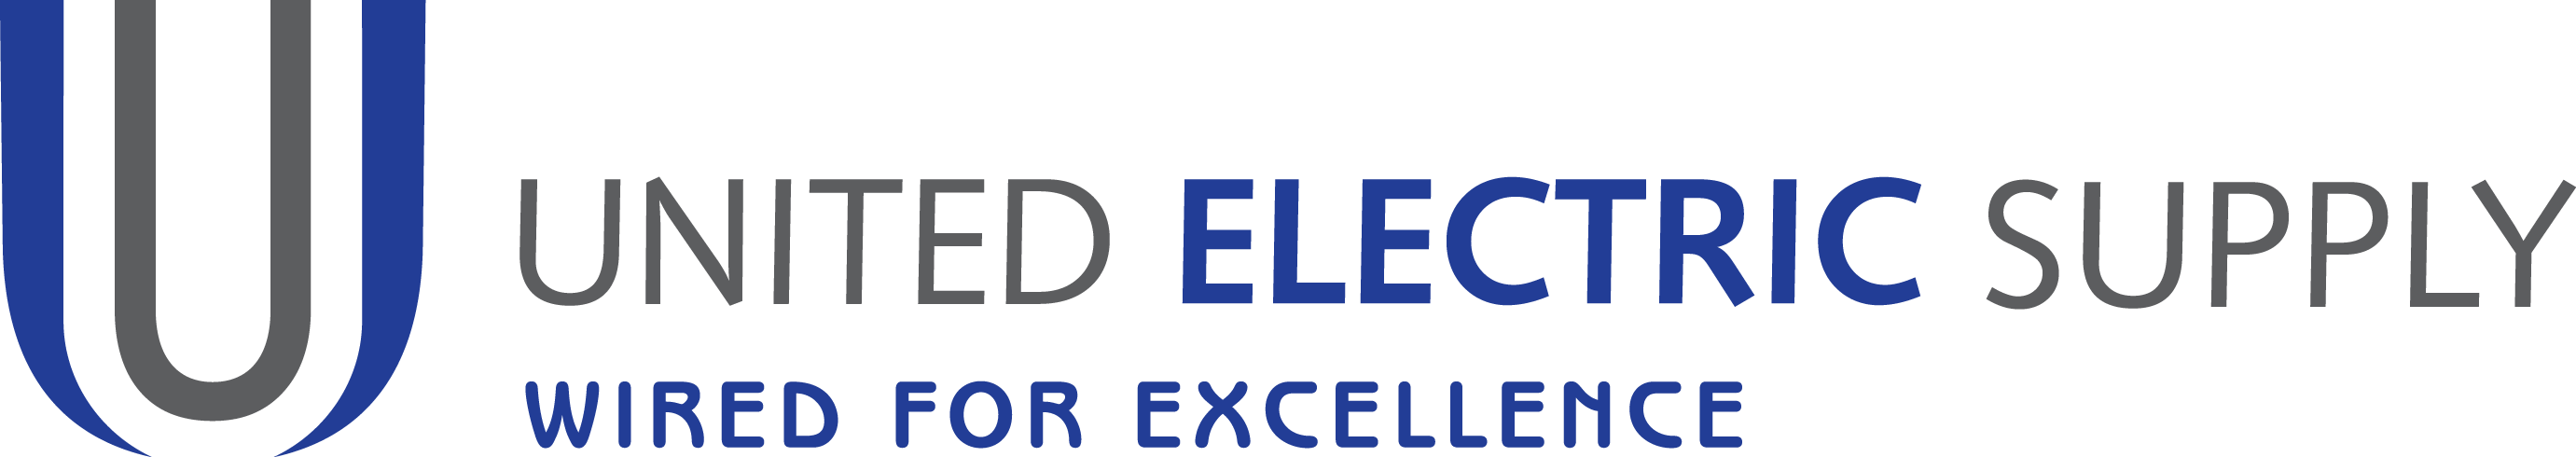 United Electric supply logo